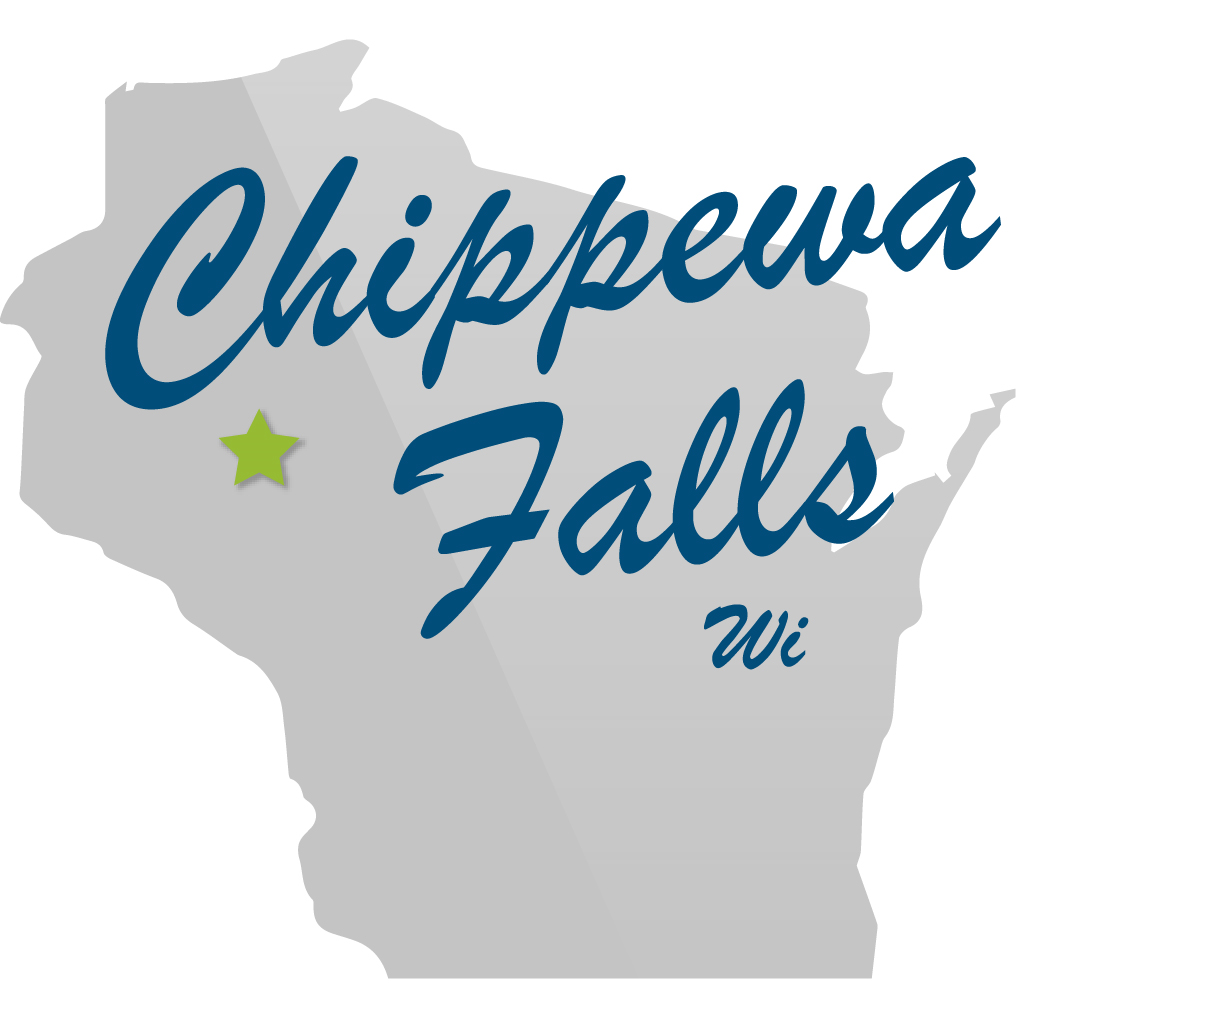 Chippewa Falls icon